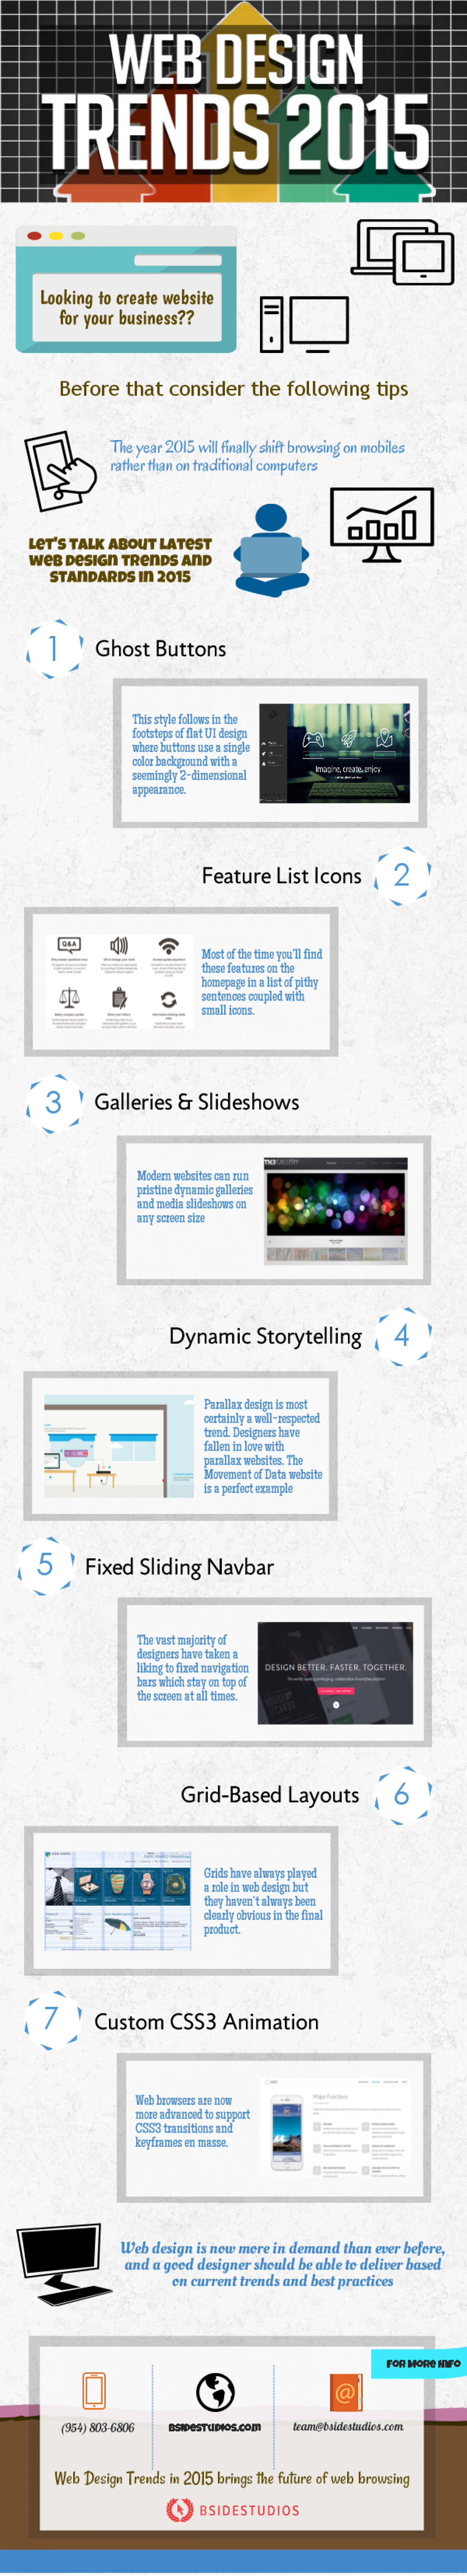 Web Design Trends in 2015 Infographic